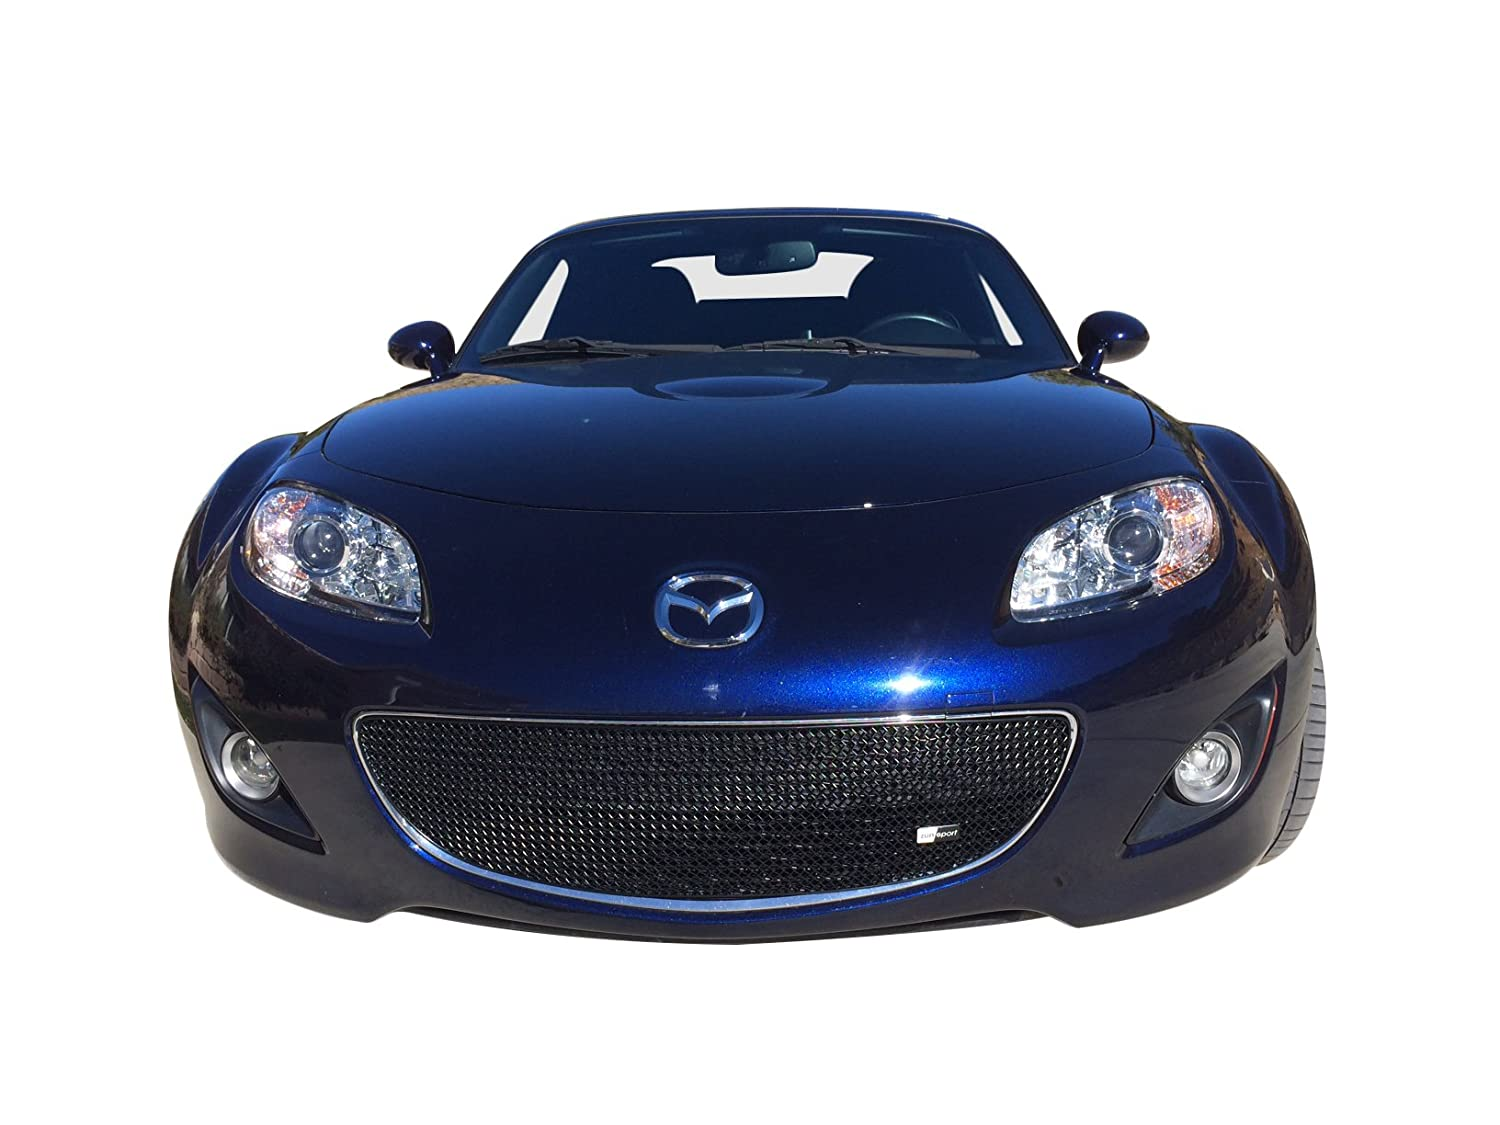 Without Number Plate Zunsport Compatible with Front Lower Grille 2009 to 2012 - Black Finish